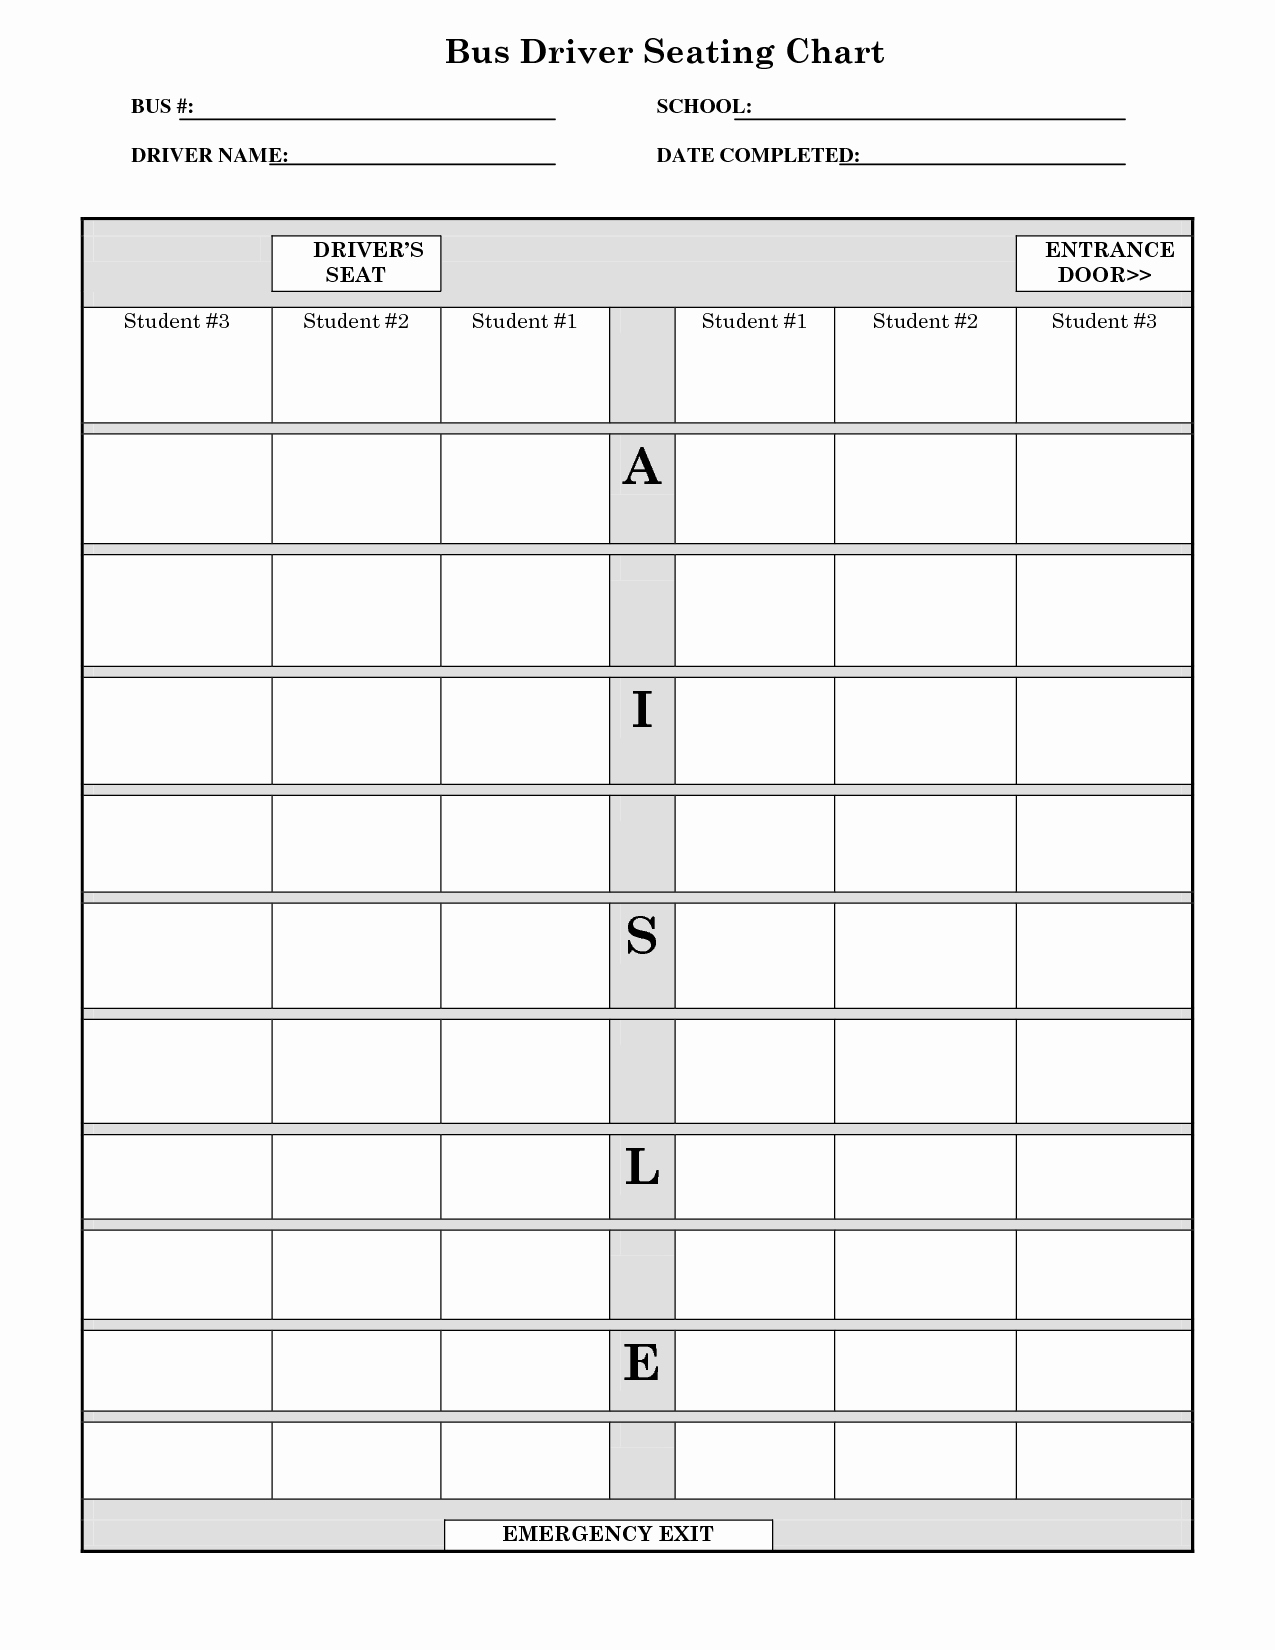 Printable School Bus Seating Chart Templates to